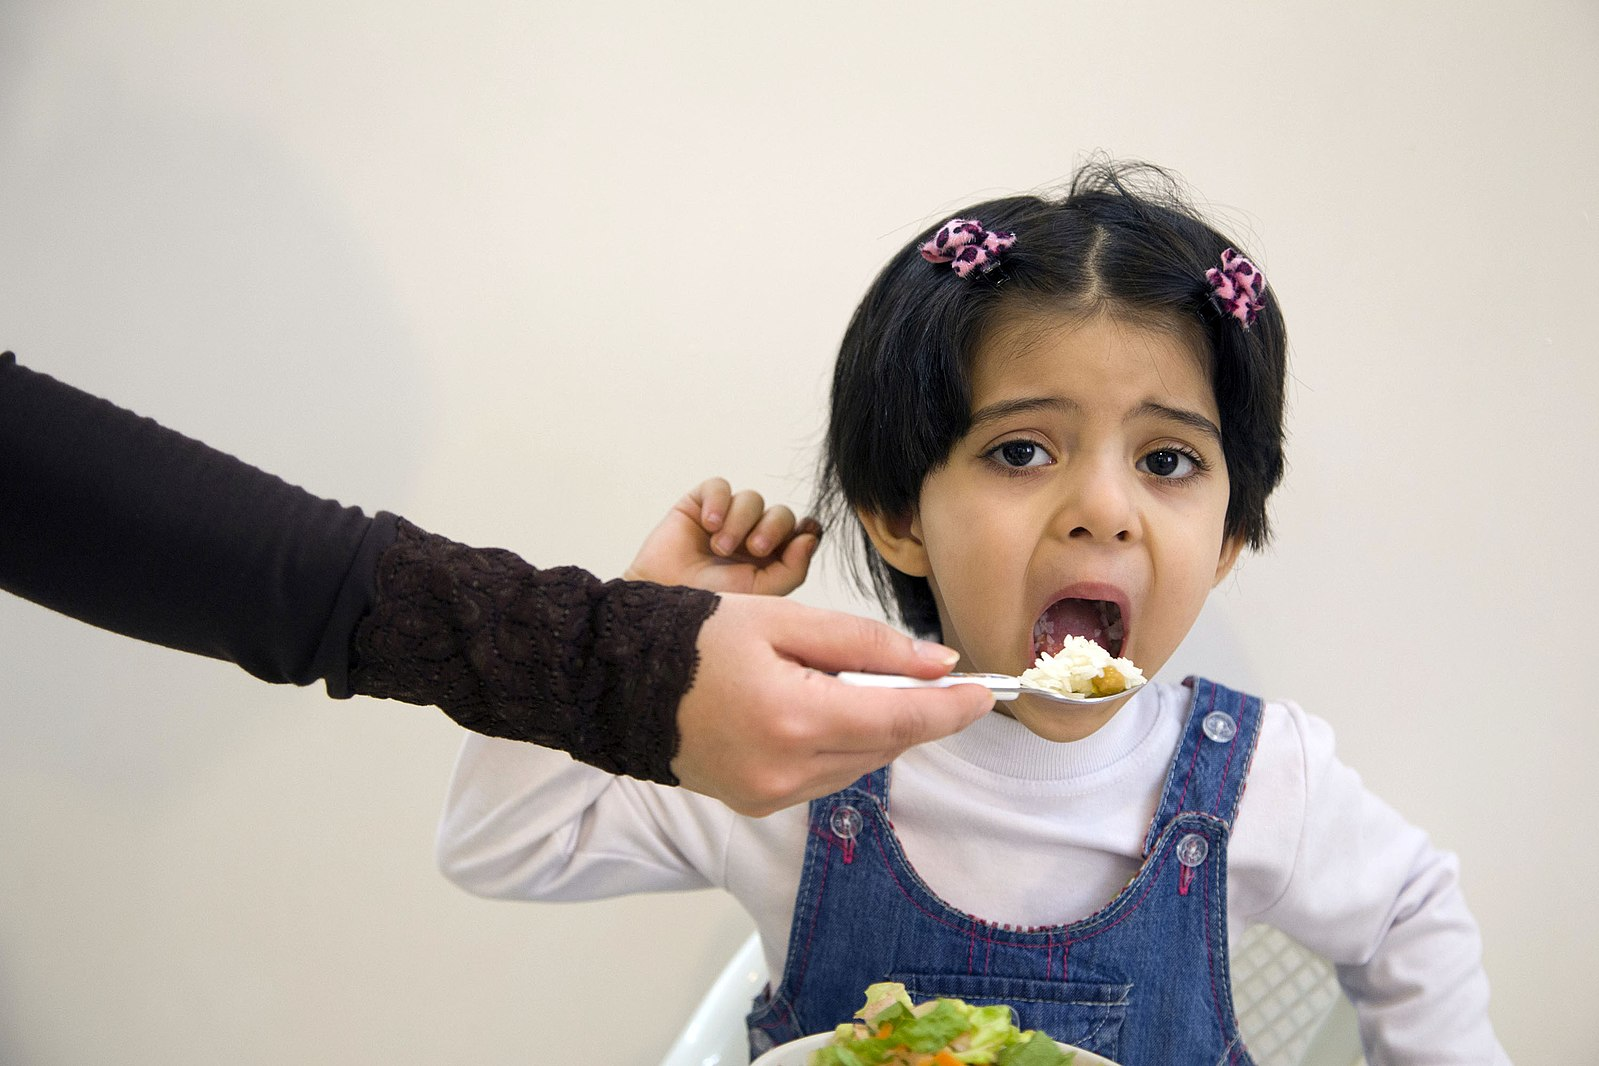 unhappy child takes a bite of food